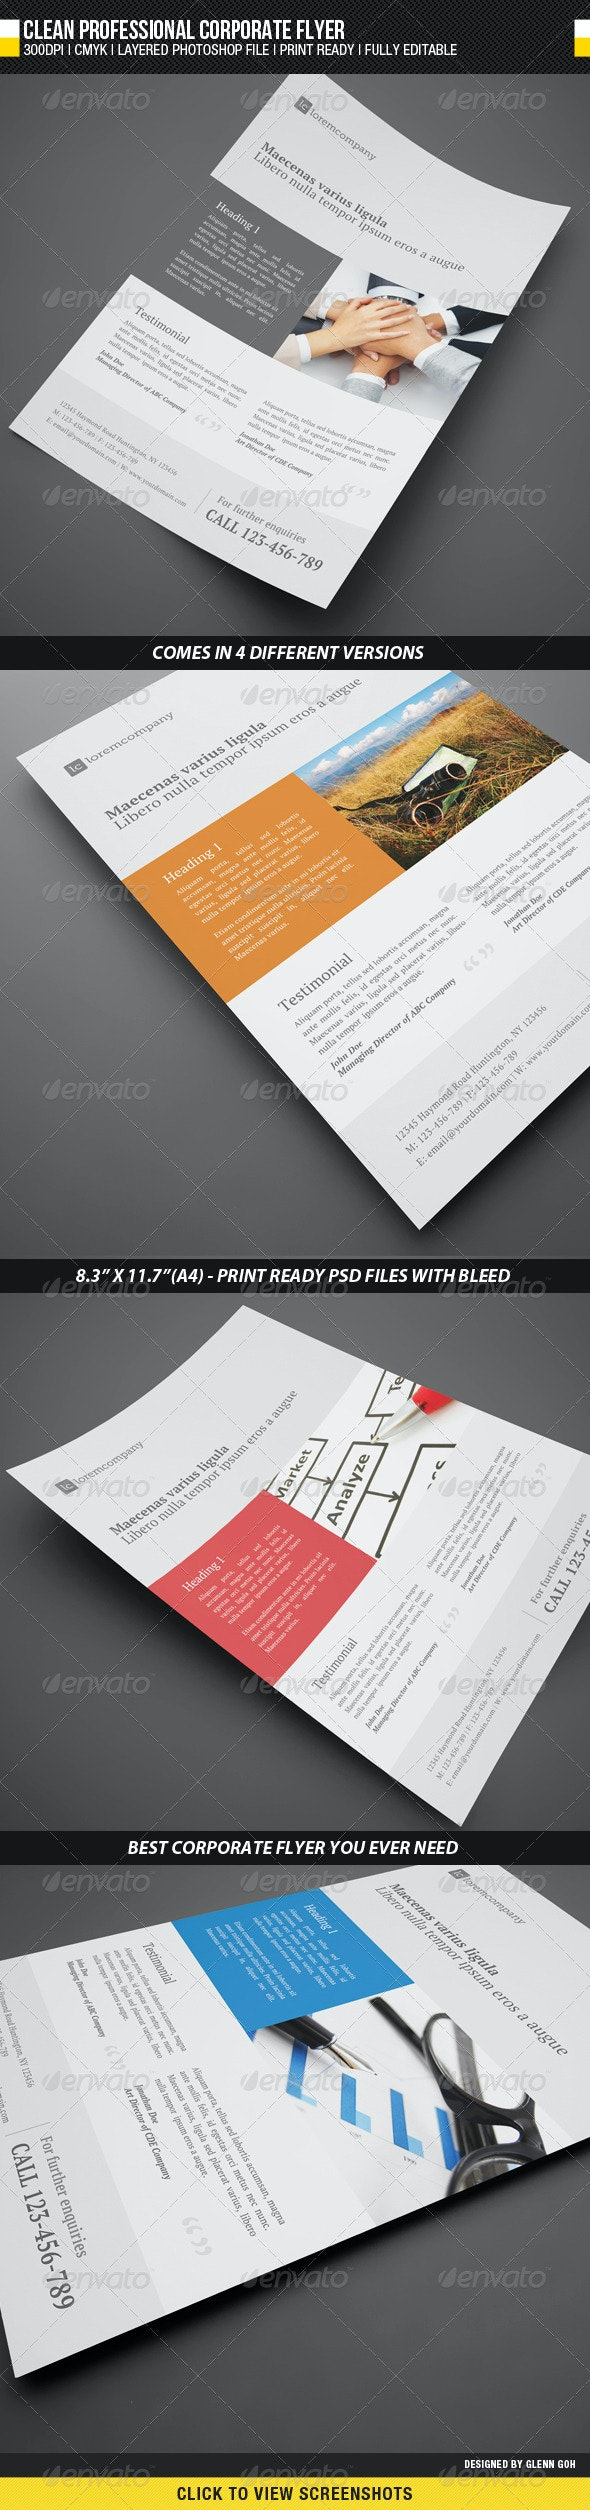 Clean Professional Corporate Flyer - Corporate Flyers